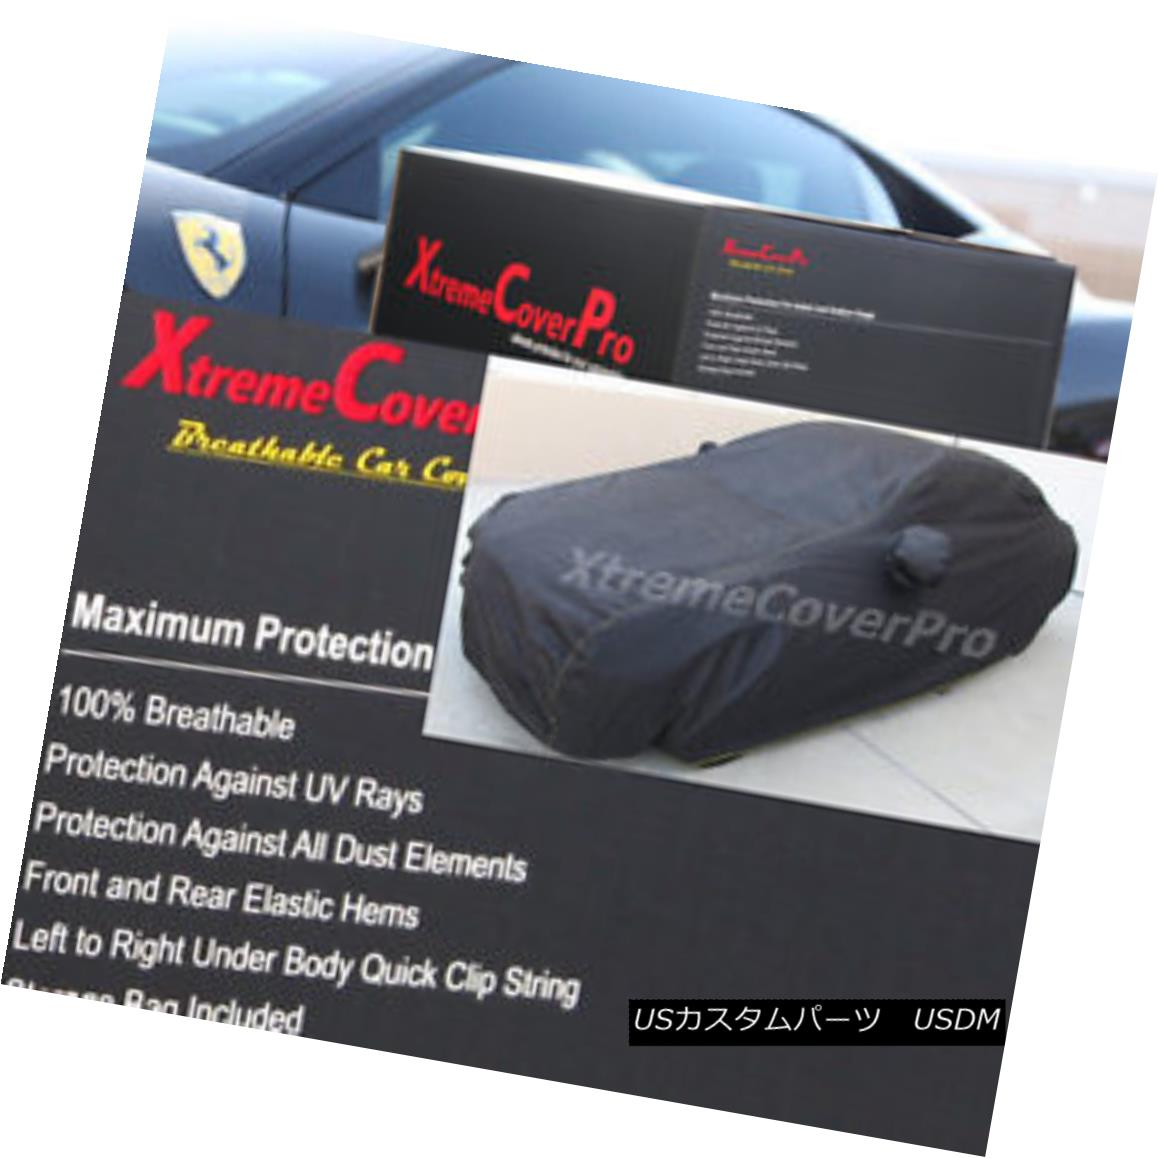 カーカバー 2015 CHRYSLER 200 CONVERTIBLE Breathable Car Cover w/Mirror Pockets - Black 2015 CHRYSLER 200 CONVERTIBLE通気性のある車カバー付き/ミラーポケット - ブラック